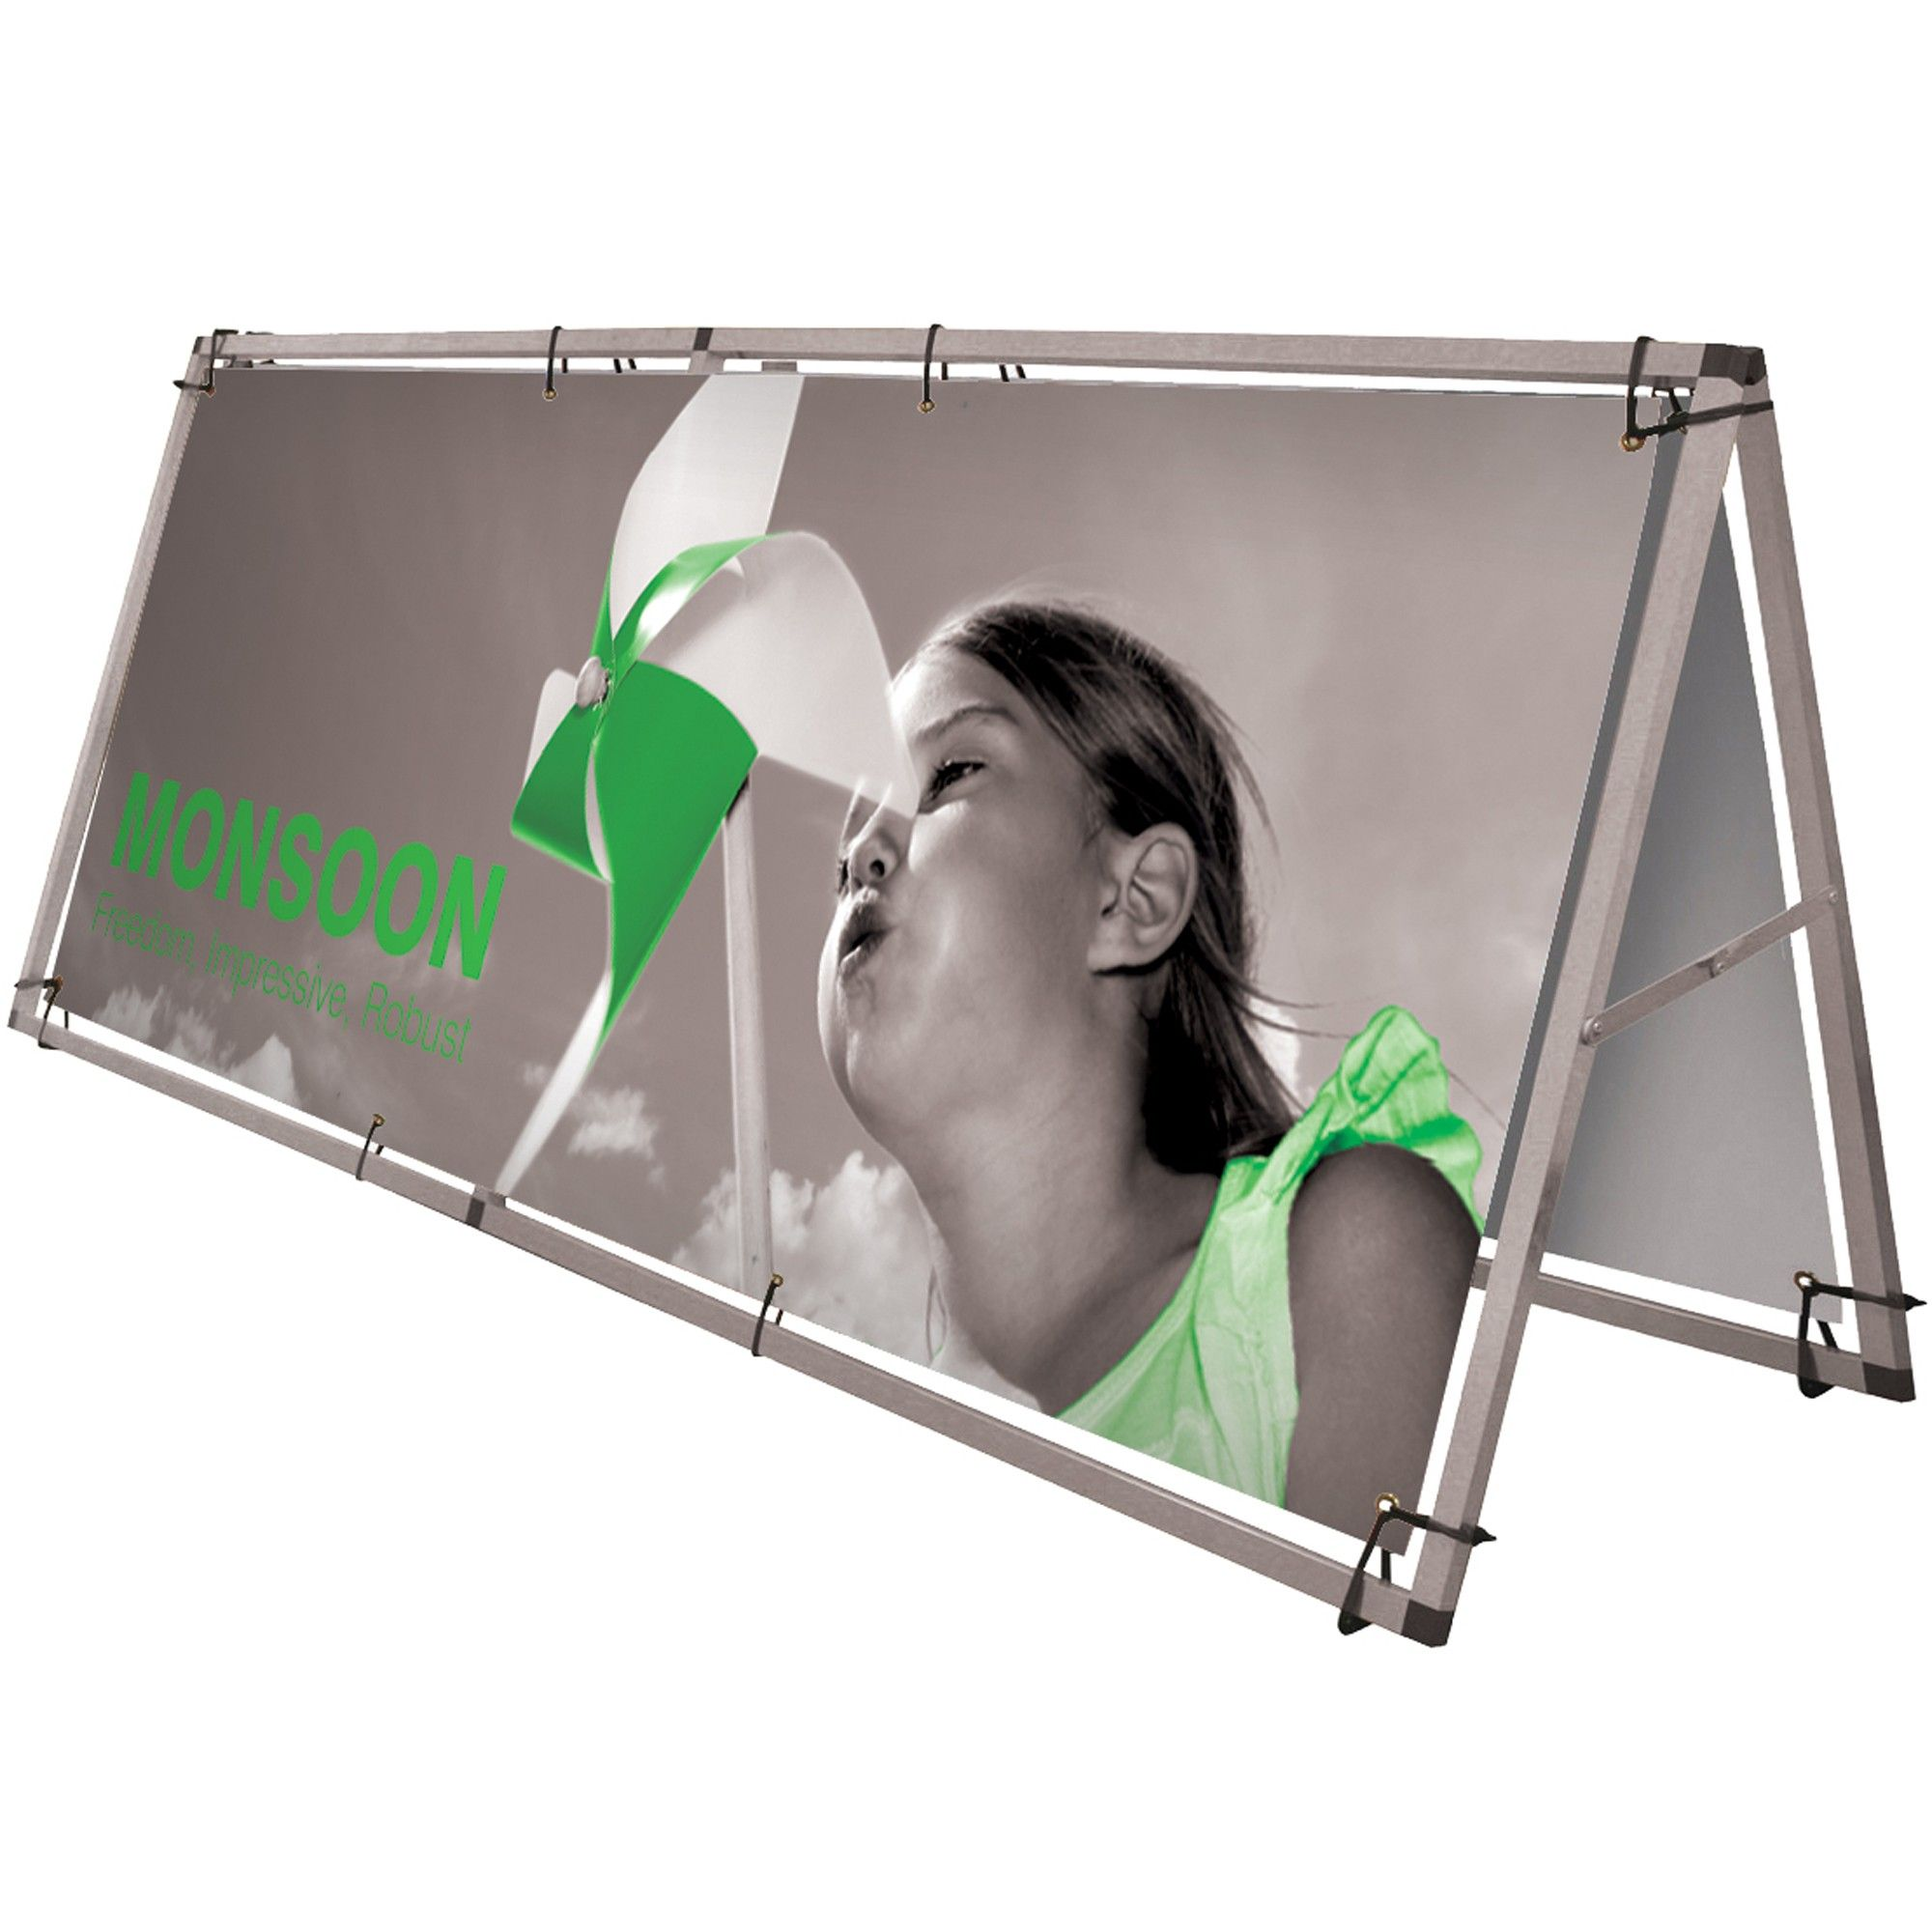 Monsoon A Frame Outdoor Banner Stand A large format single or